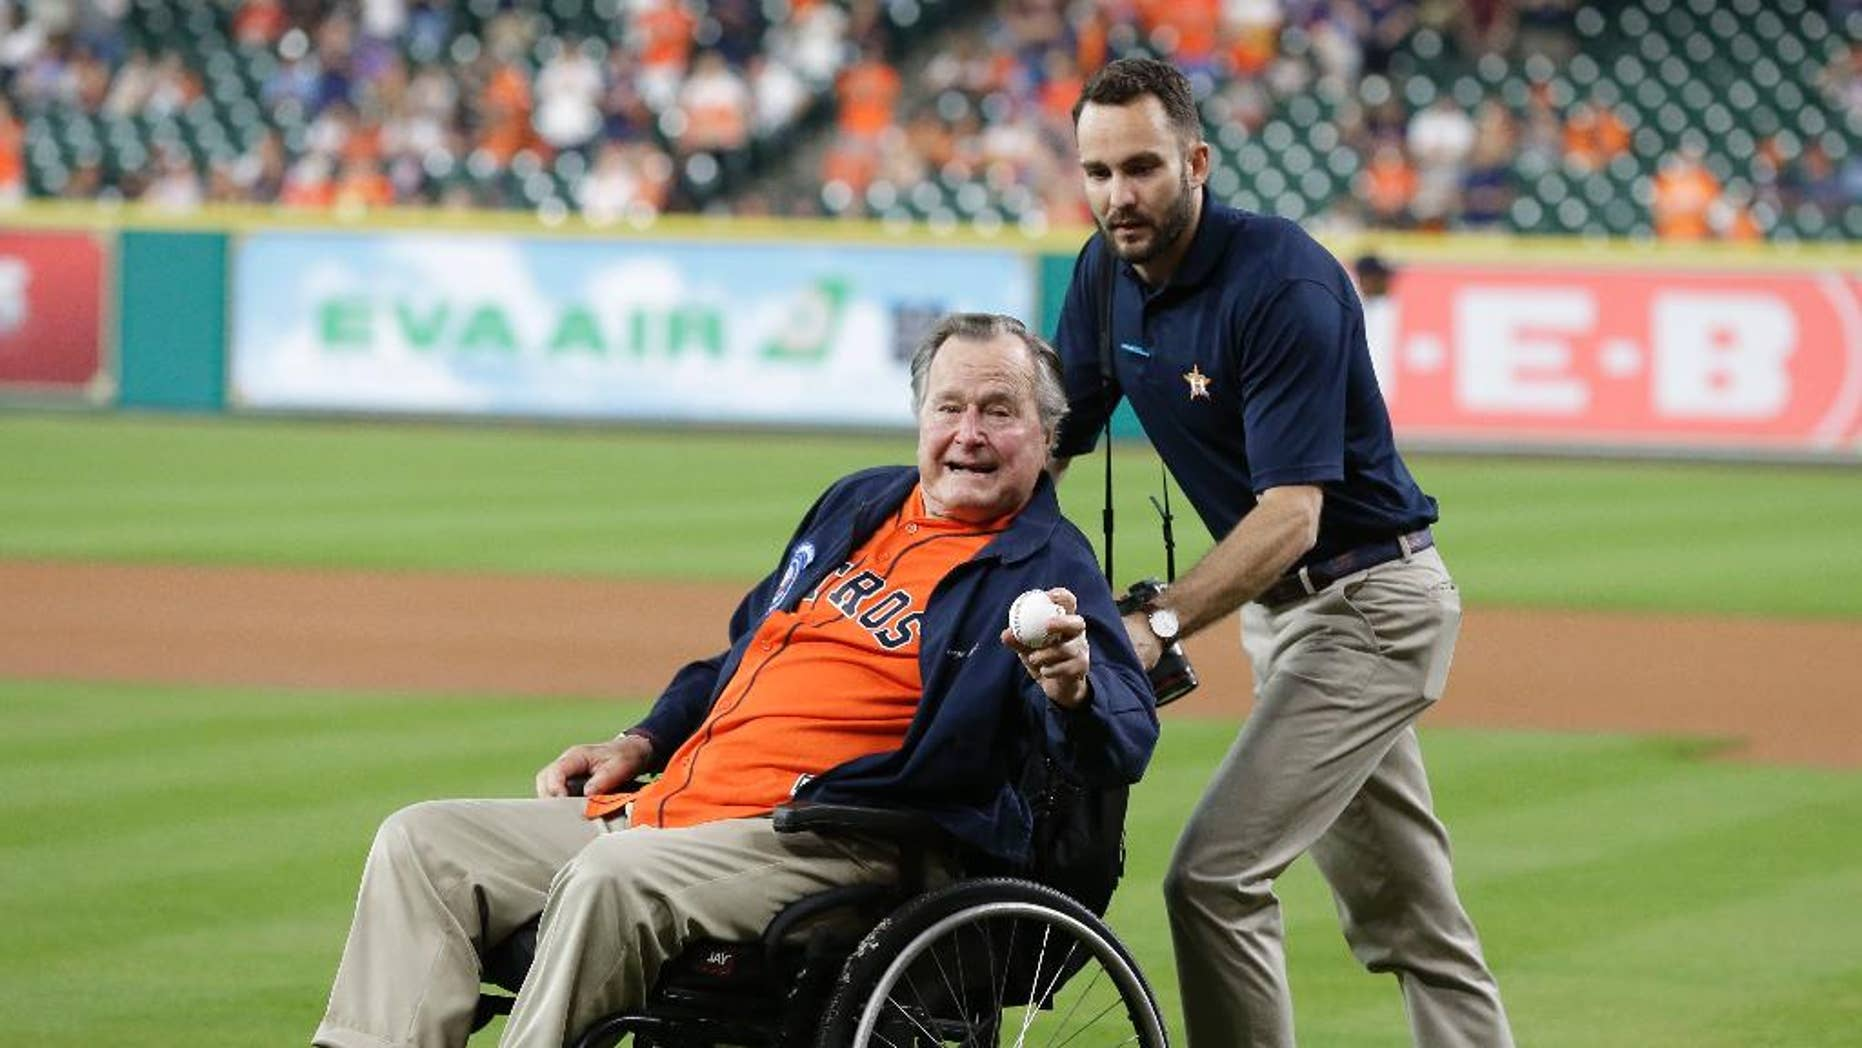 FILE - In this April 12, 2016 file photo, former President George H.W. Bush, left, shows his pitching grip as he wheeled out to the field to throw out the ceremonial first pitch to Houston Astros starting pitcher Collin McHugh before the baseball game against the Kansas City Royals in Houston. Fresh from his 92nd birthday, former President George H.W. Bush is enjoying himself in Maine after recovering from a fall at his home nearly a year ago. Bush led a group of 40 wounded warriors on a fishing trip at the helm of his speedboat Wednesday, June 15, 2016, three days after a low-key birthday celebration. (AP Photo/Pat Sullivan, File)